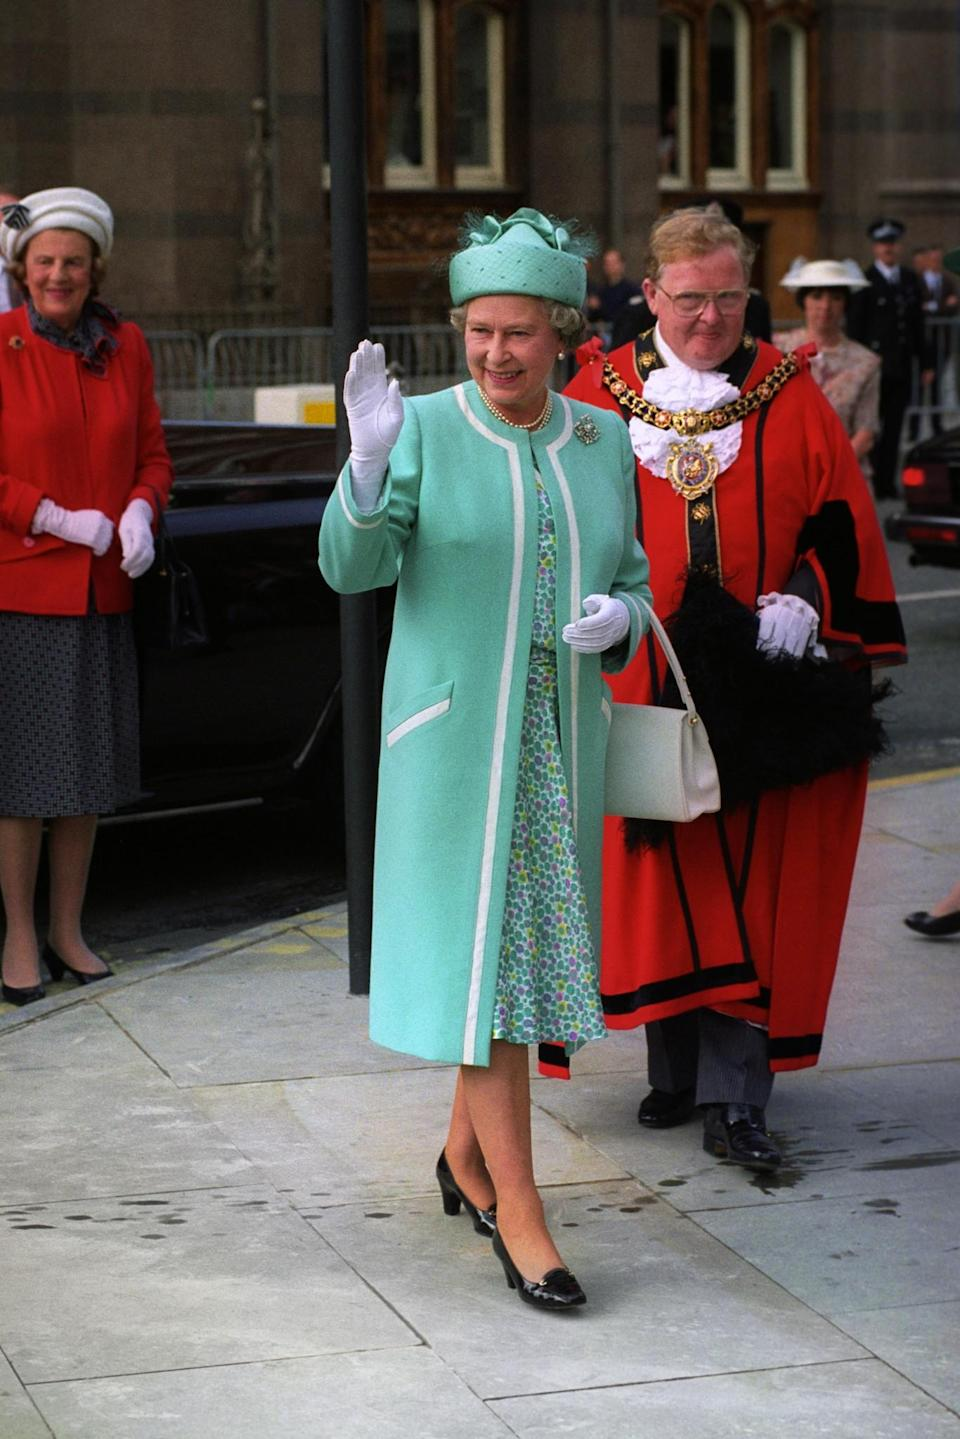 <p>The Queen visits Manchester to open the new Metrolink Tram System. (PA Archive) </p>